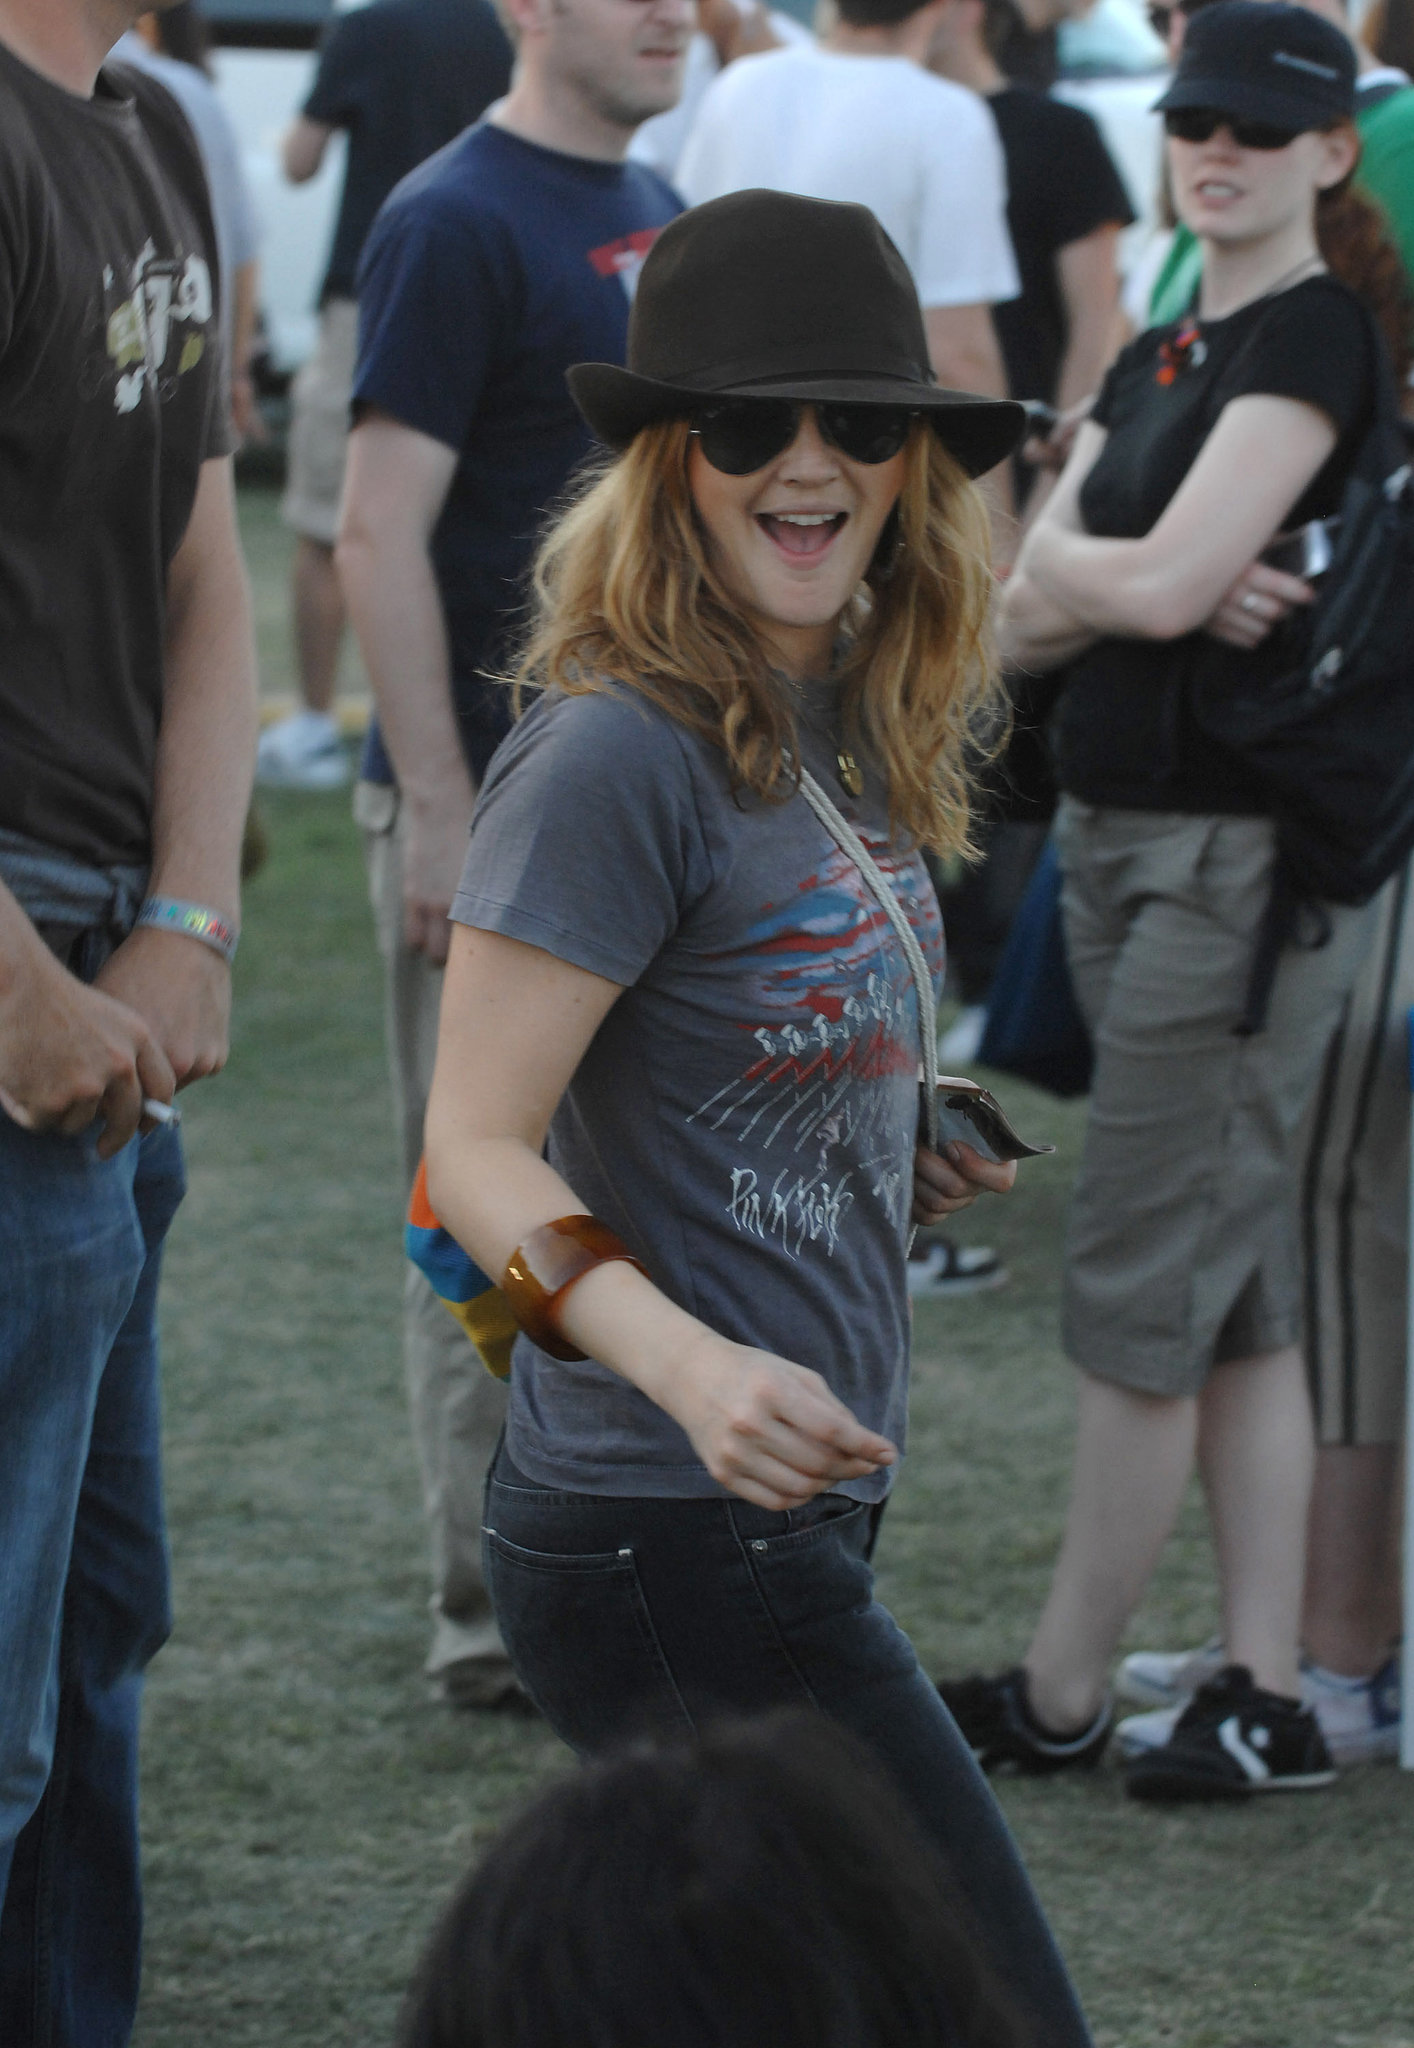 In 2007, Drew Barrymore danced among the Coachella crowd.